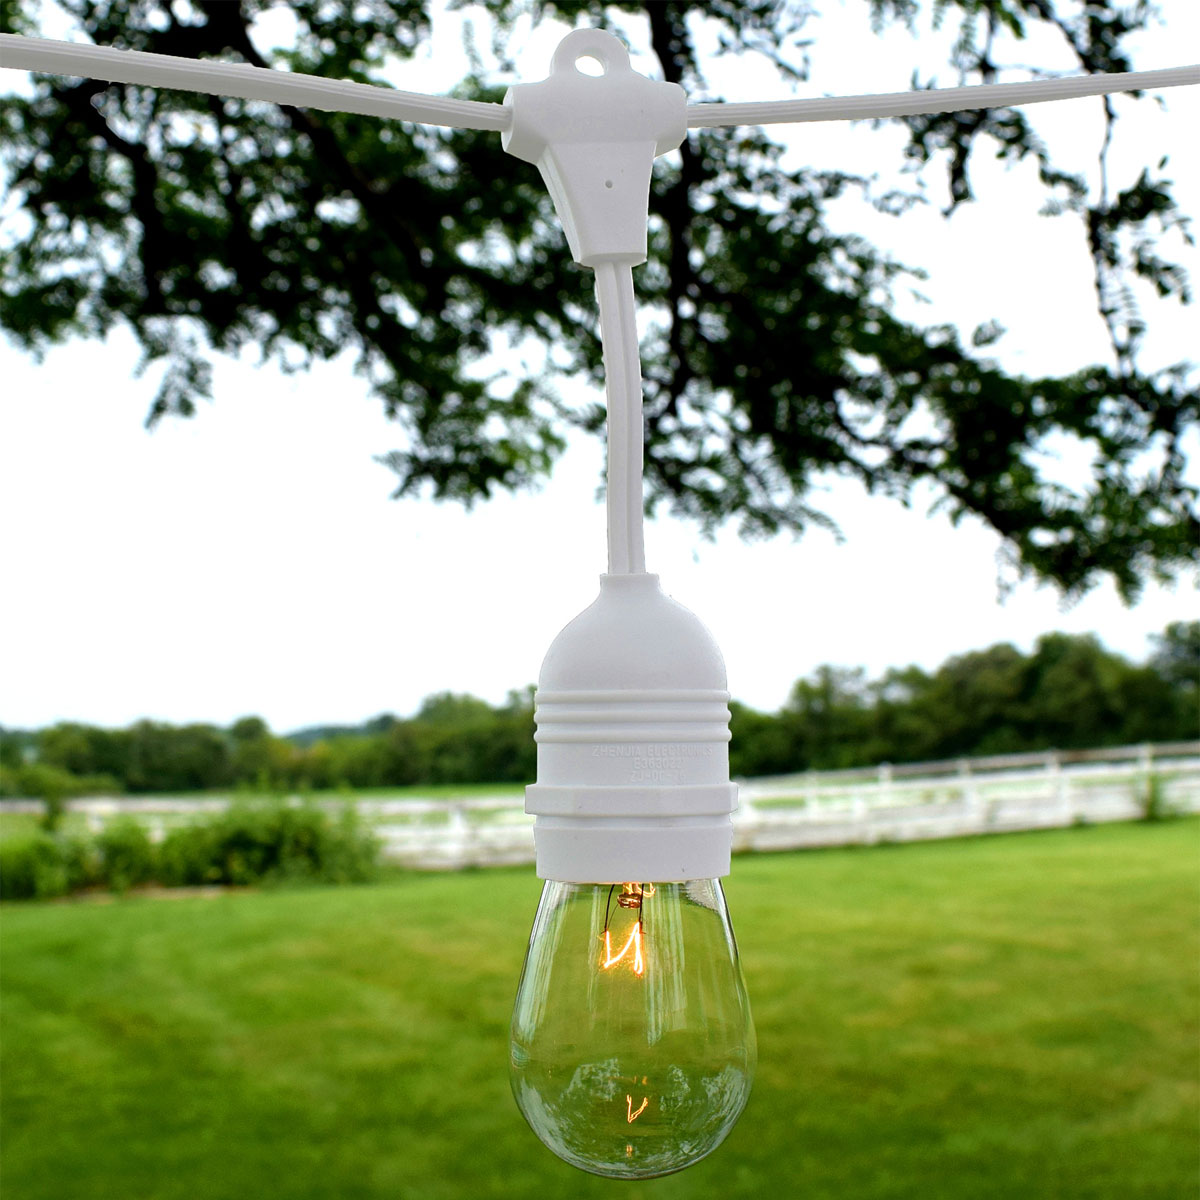 Outdoor Lights On Patio: Outdoor Patio String Lights